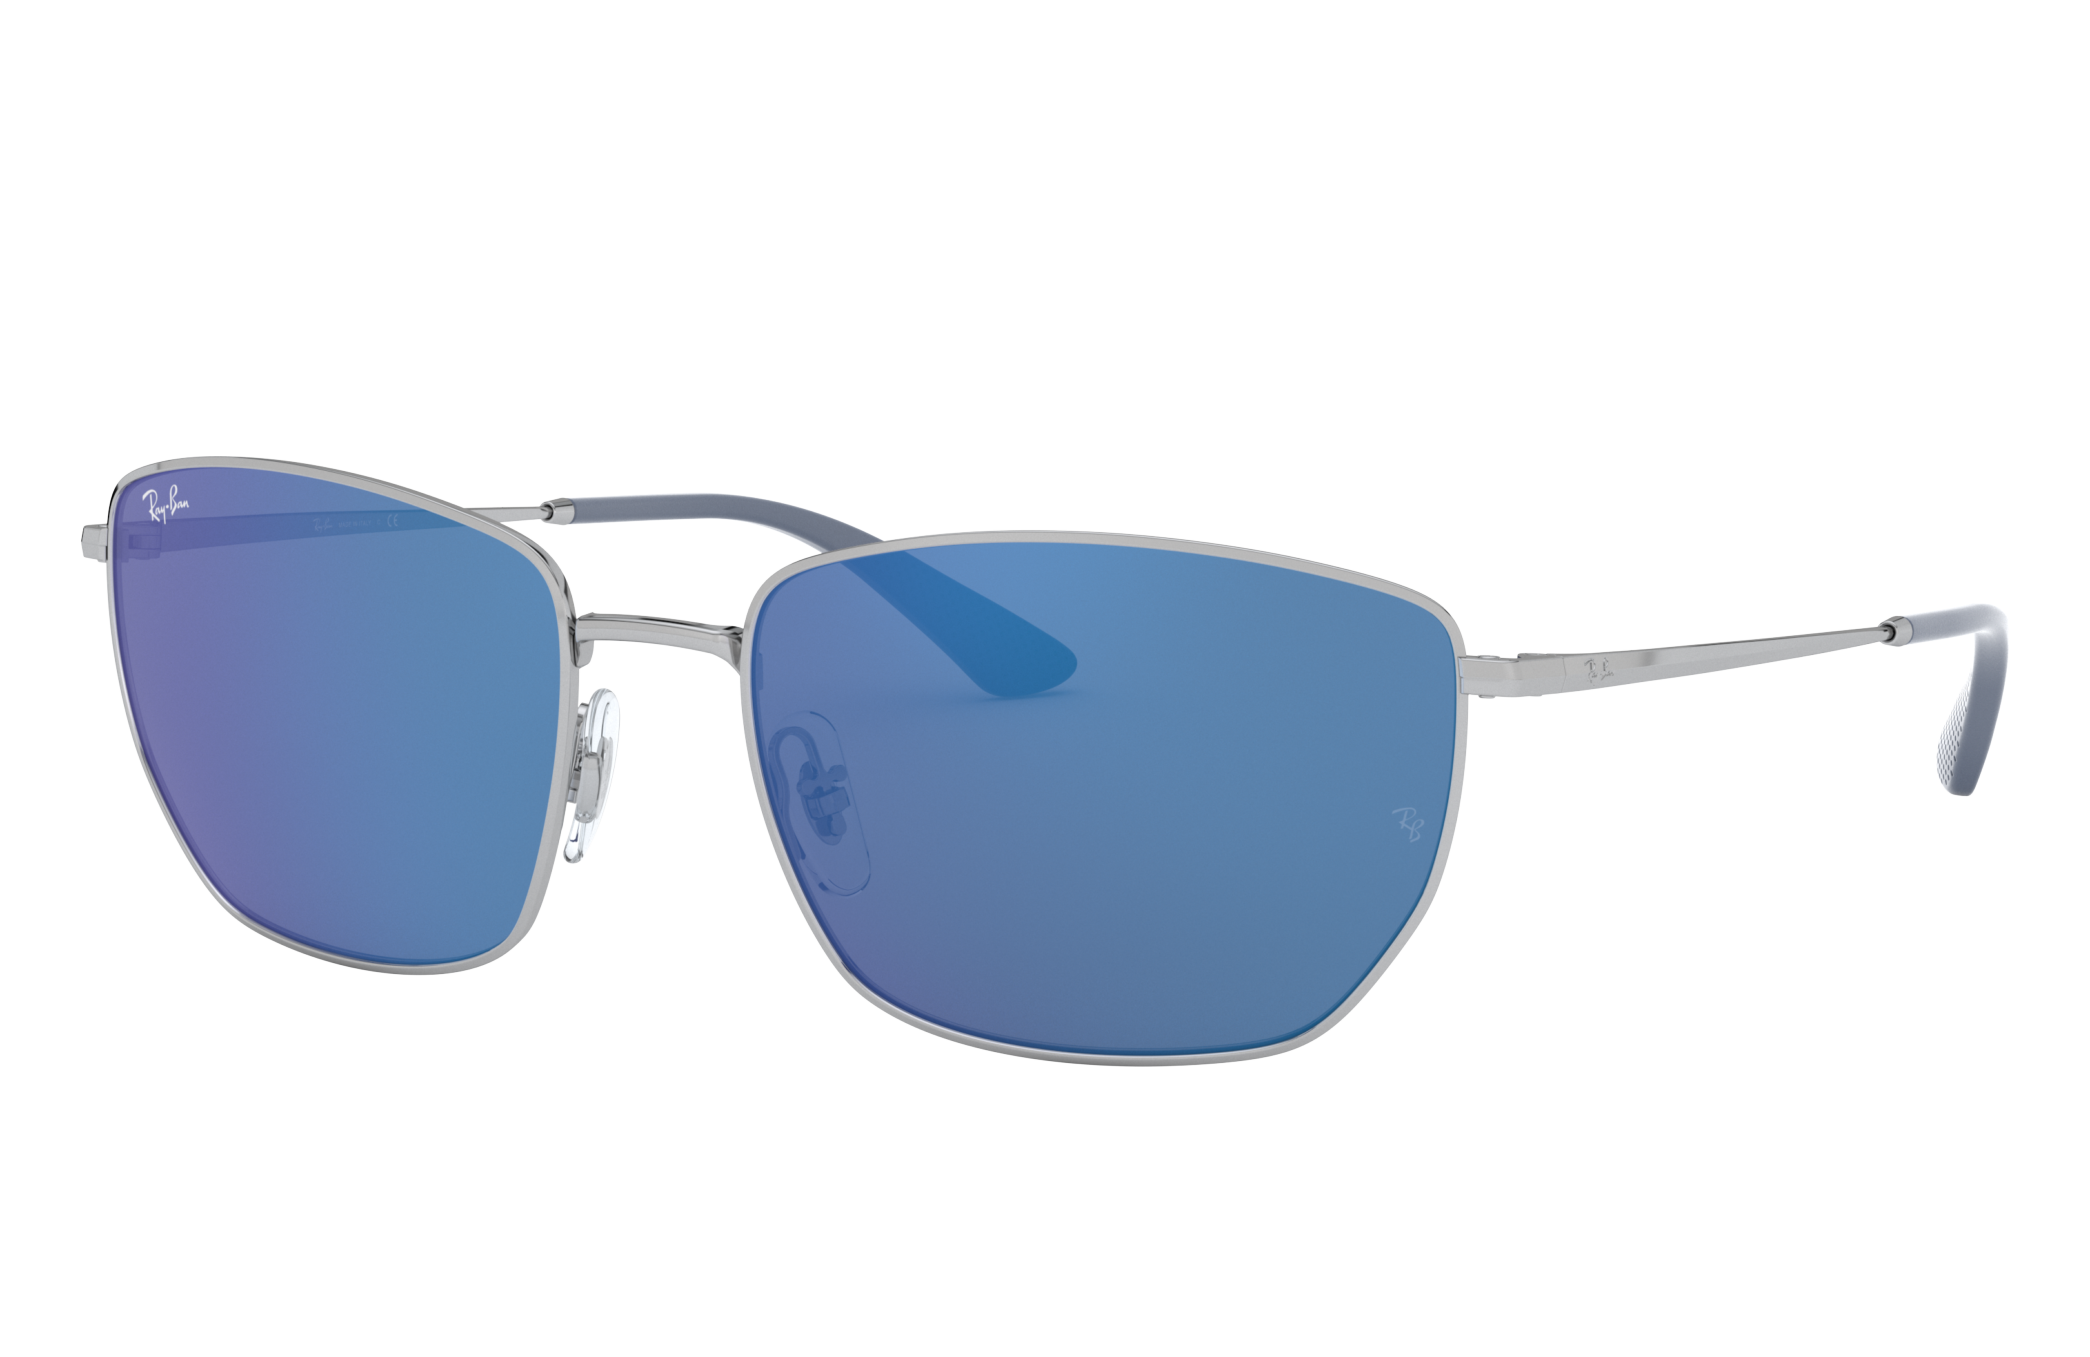 Ray-Ban Rb3653 Silver, Blue Lenses - RB3653